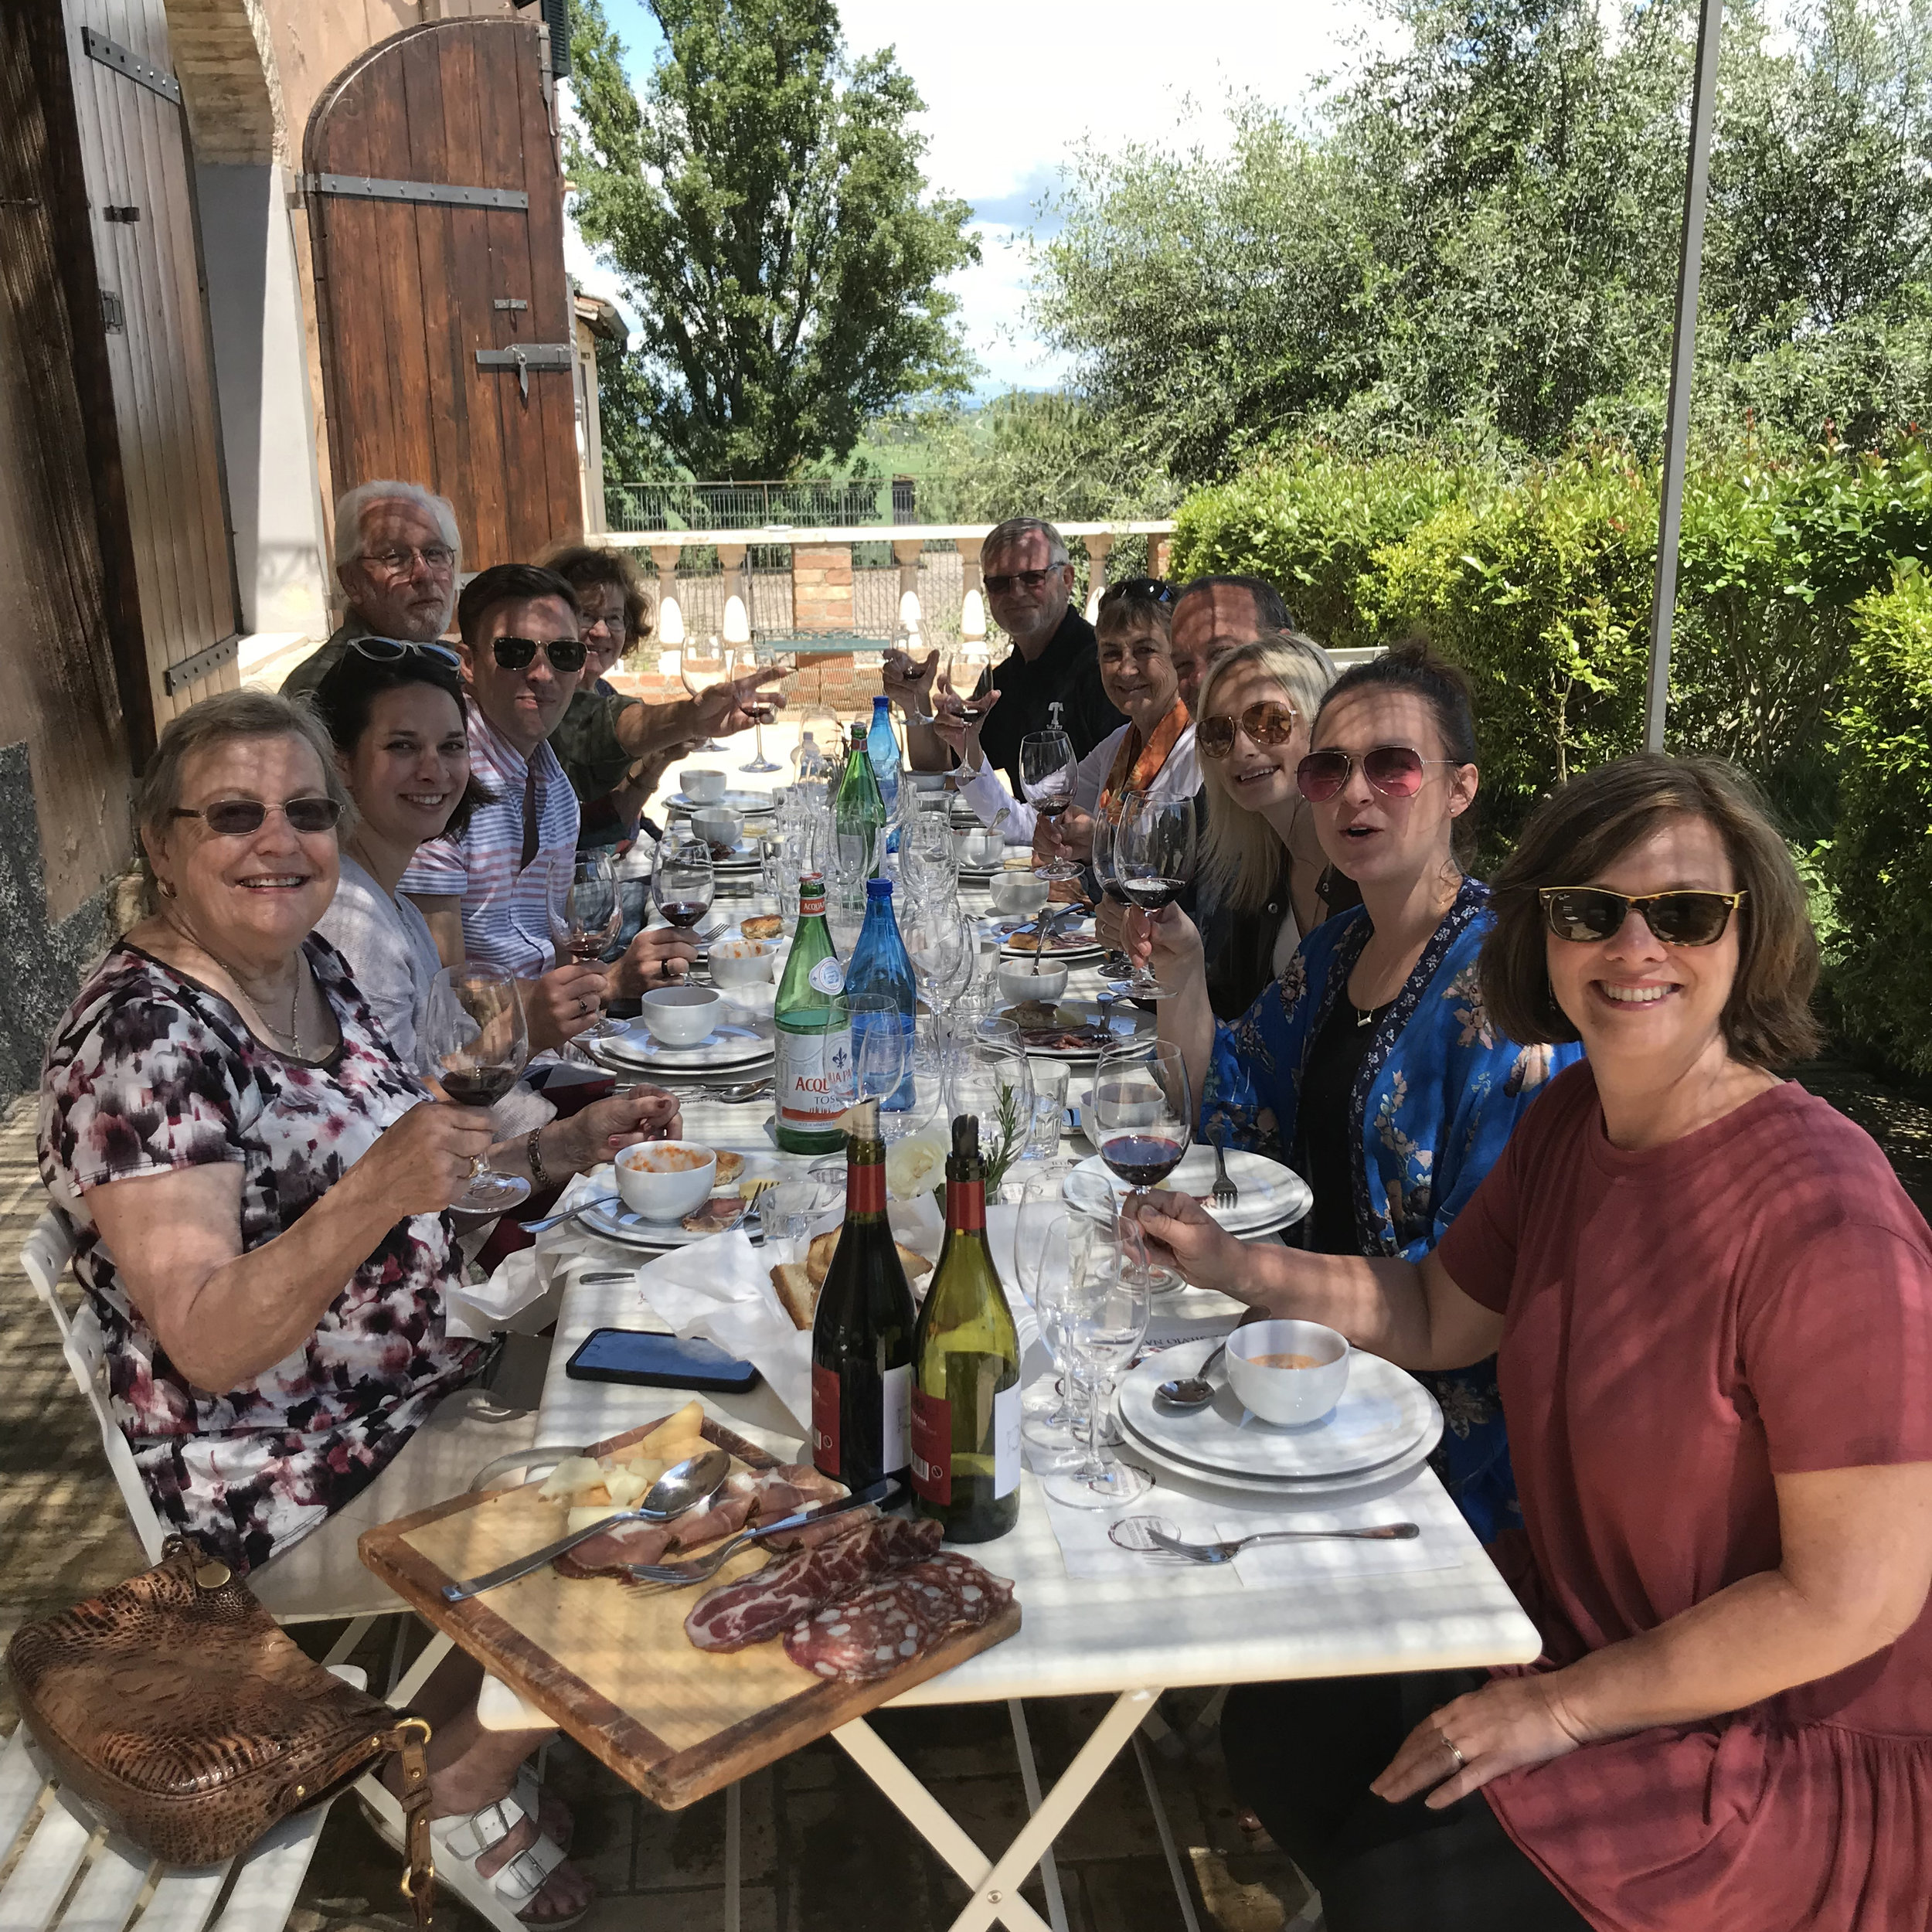 Lunch at Tenute Silvio Nardi during a small group tour of Tuscany